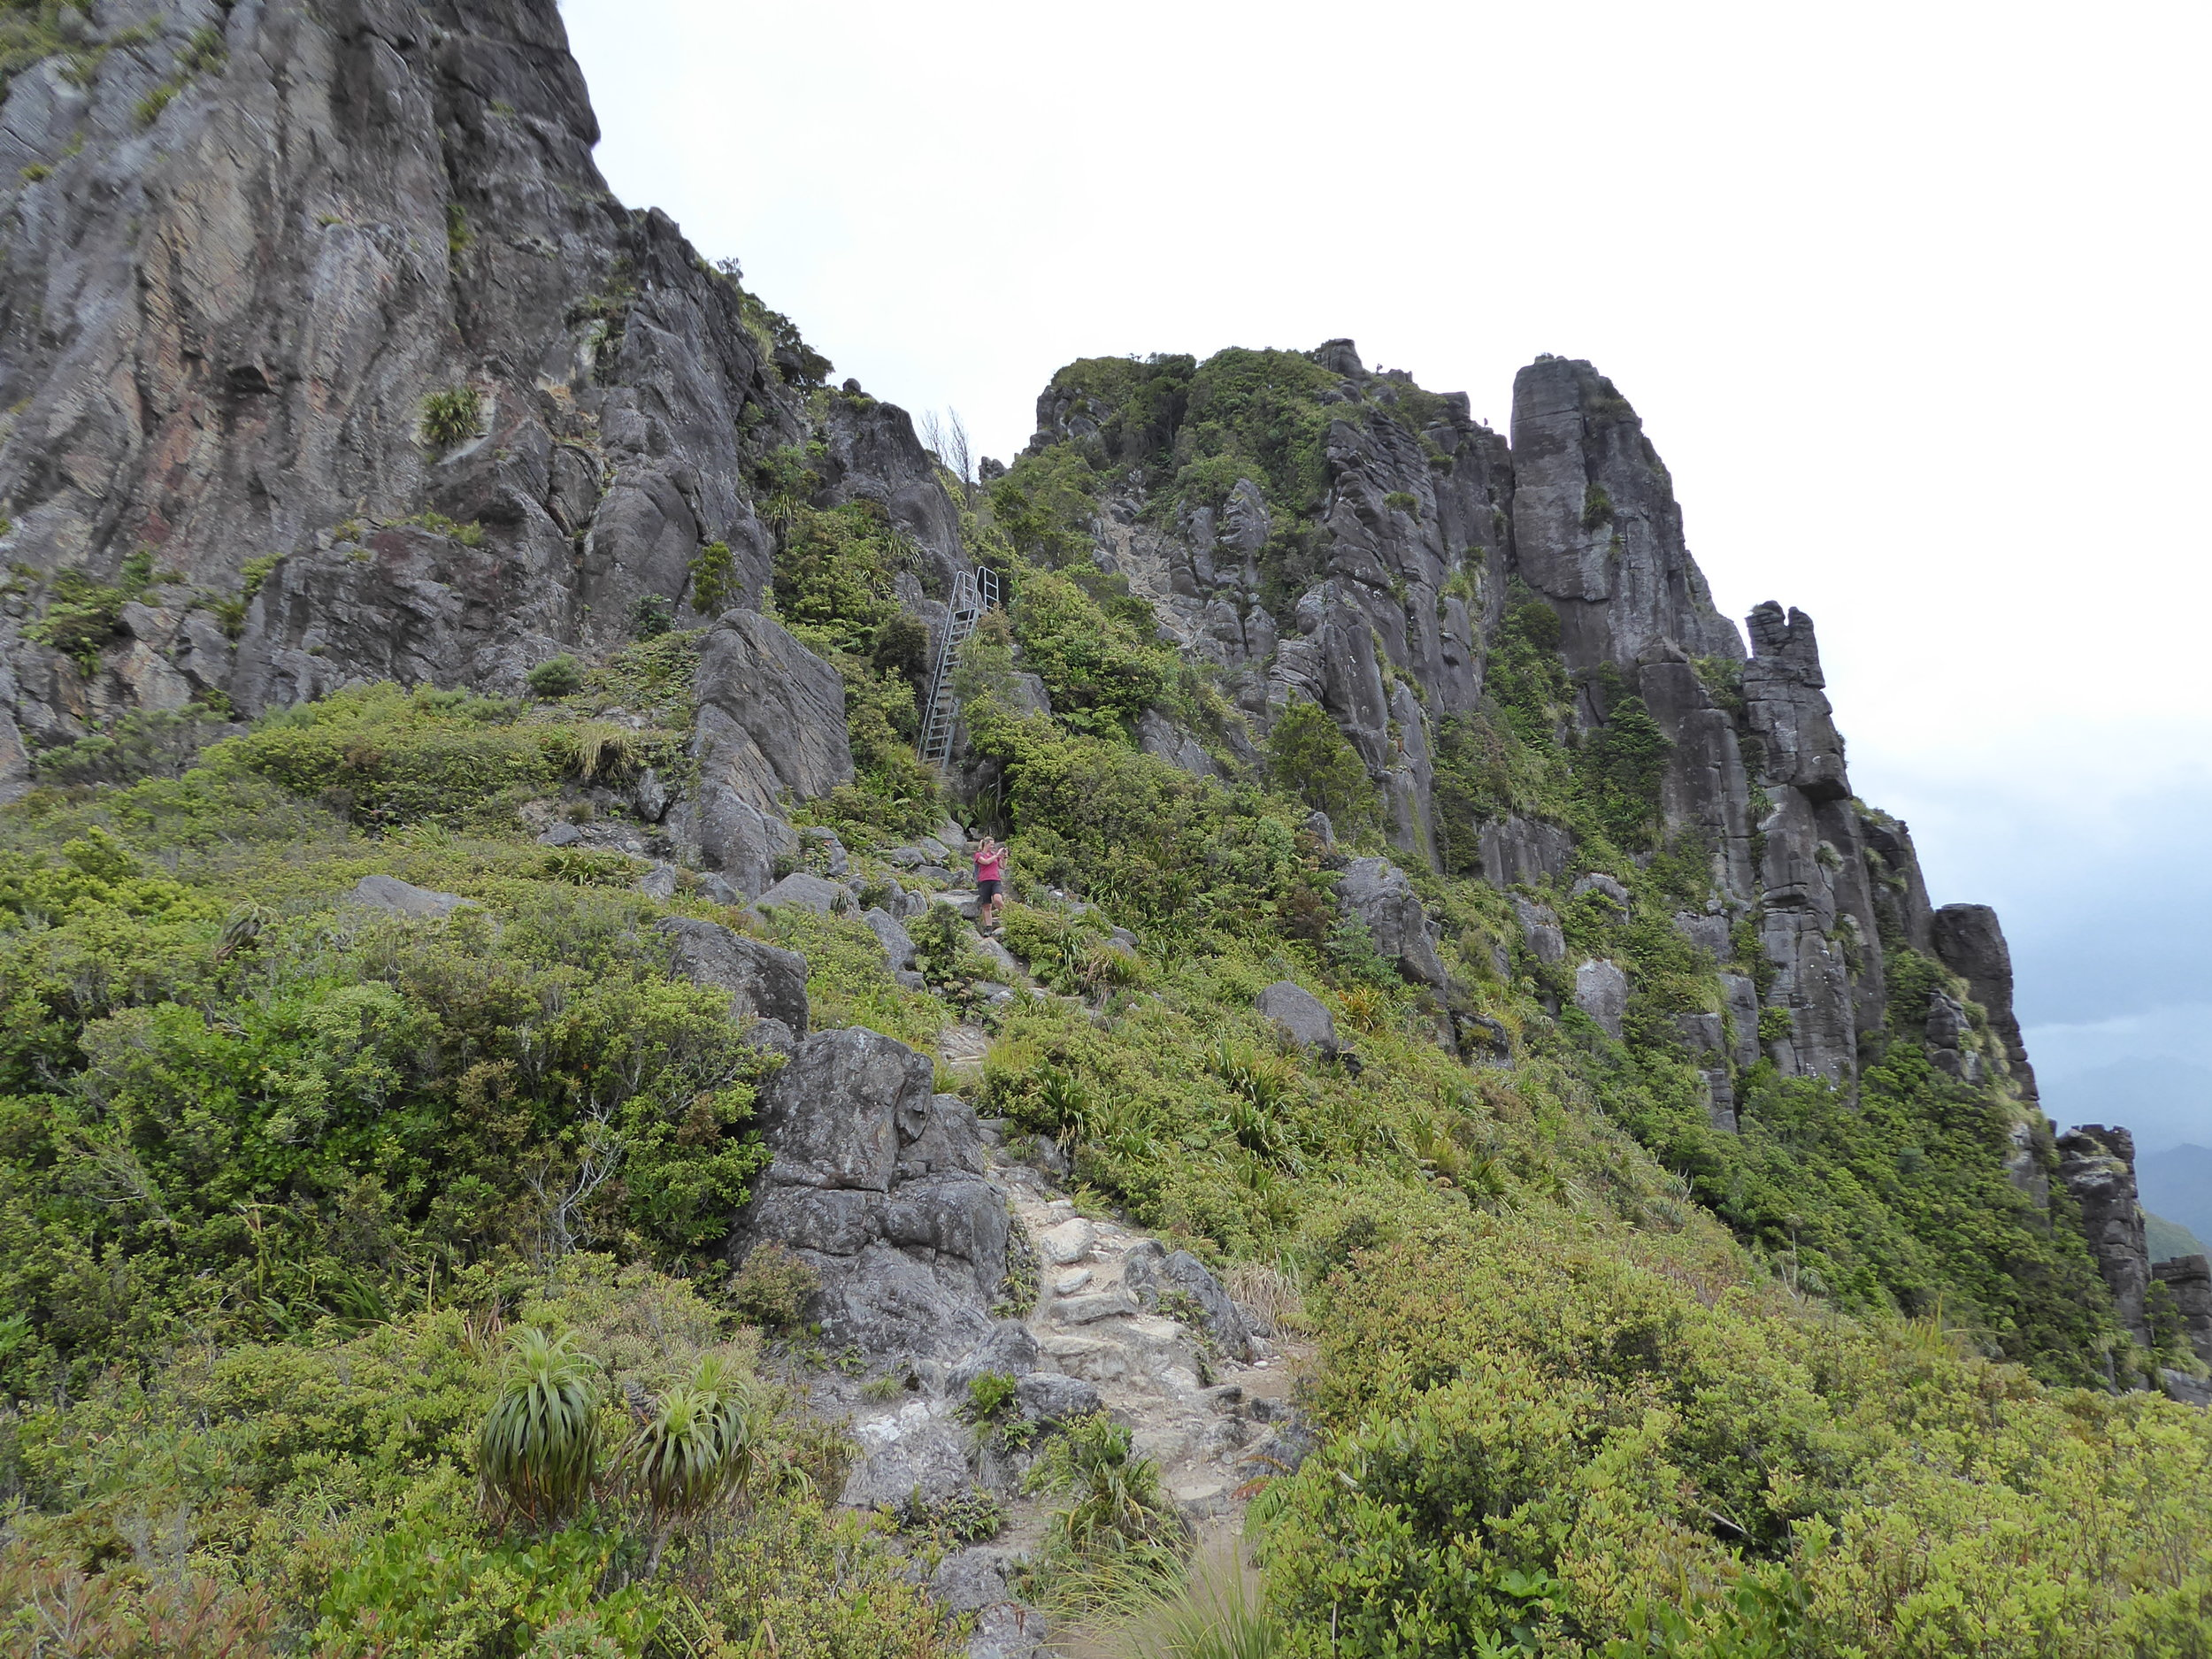 It's a steep way to the top (of the pinnacles, new Zealand)